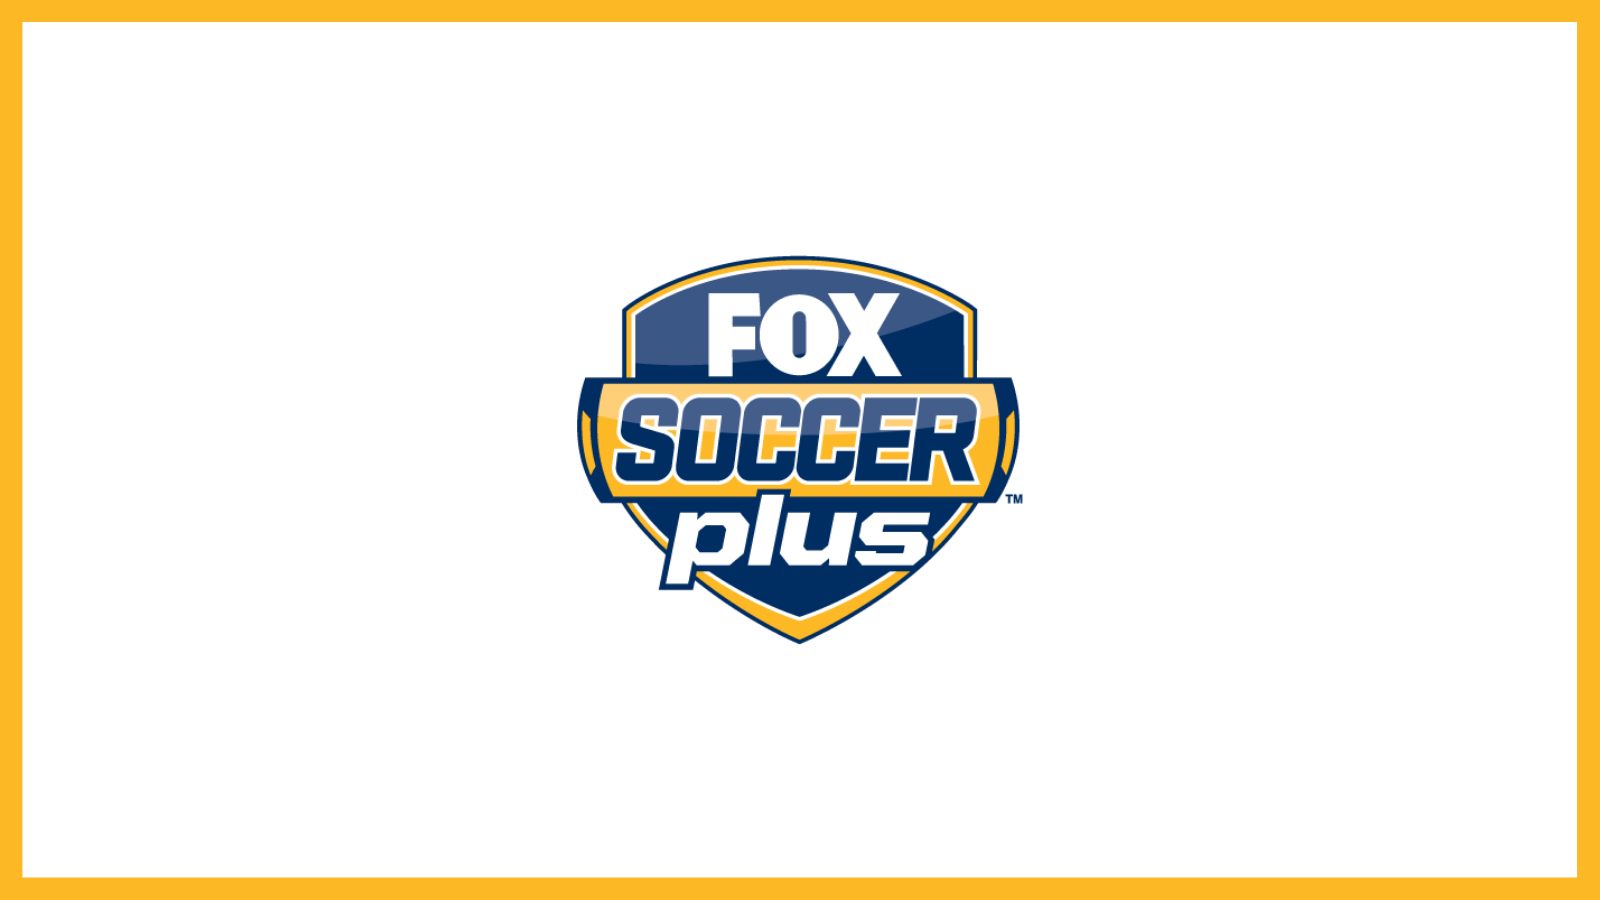 How to Watch Fox Soccer Plus Online Without Cable: Eyes on the Game!